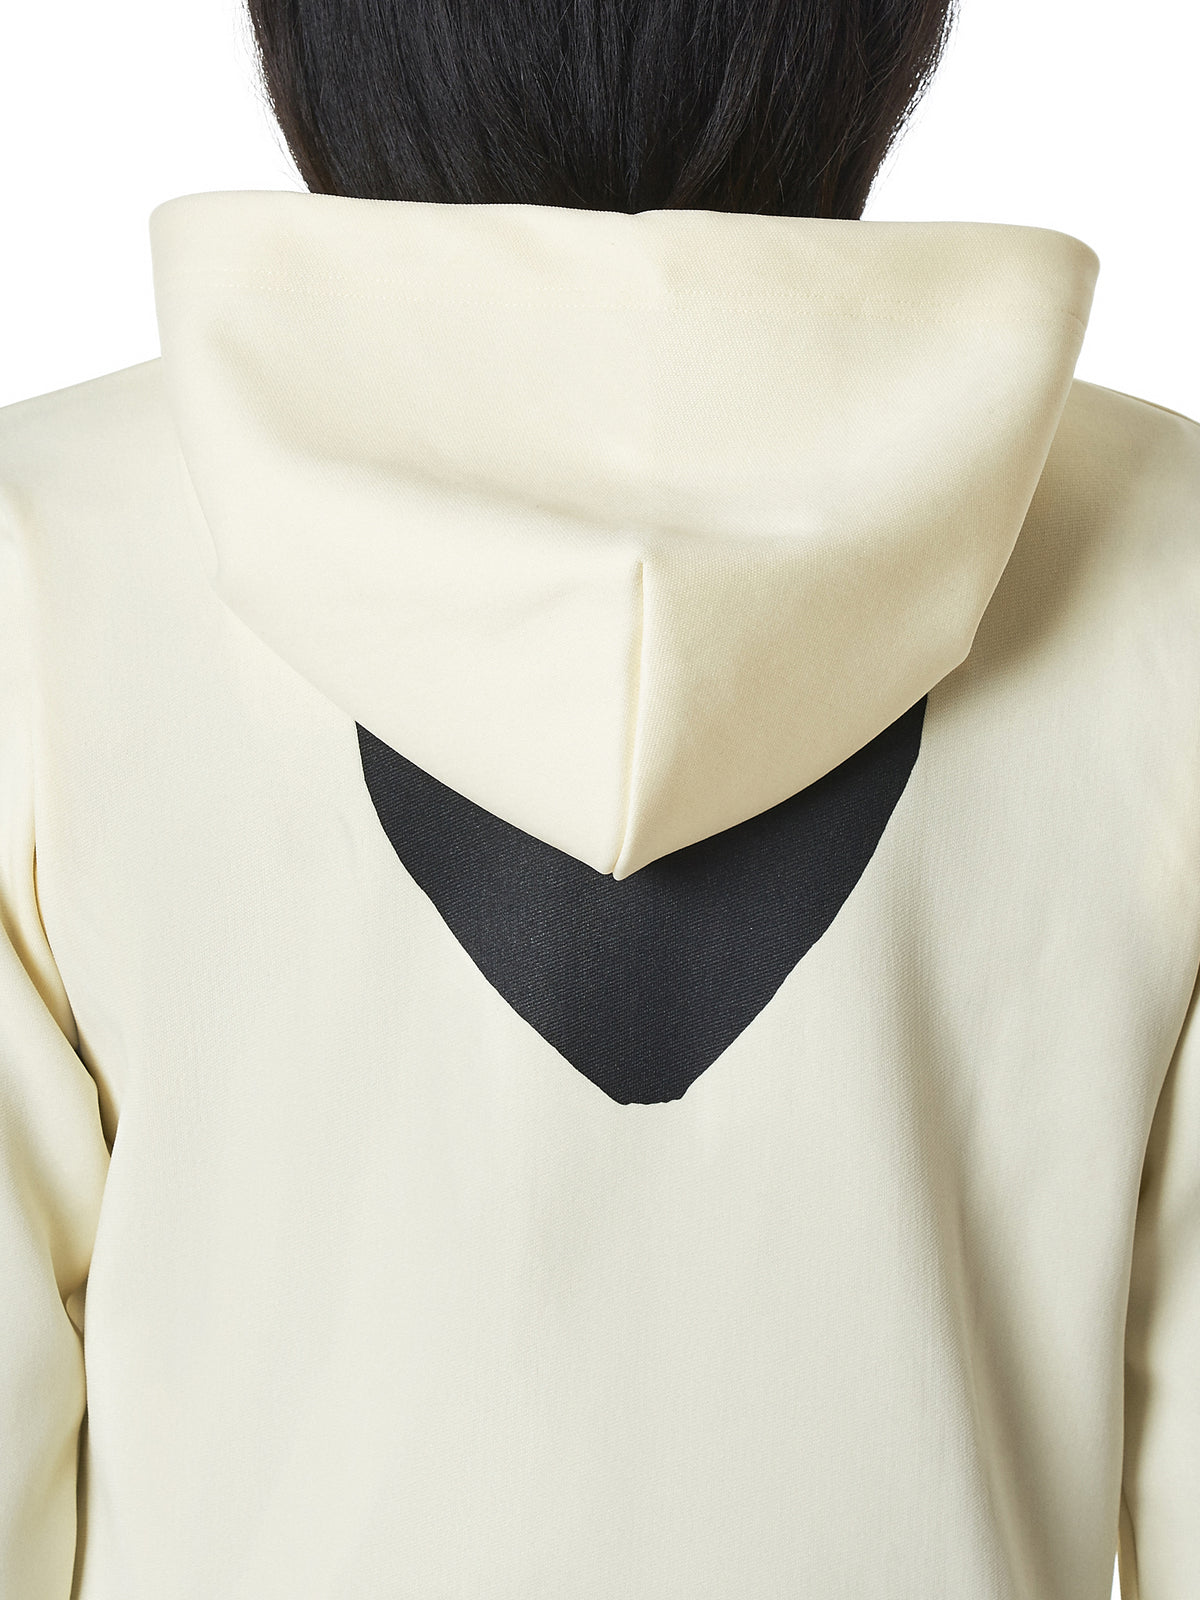 Comme des Garçons Play Hoodie - Hlorenzo detail 2